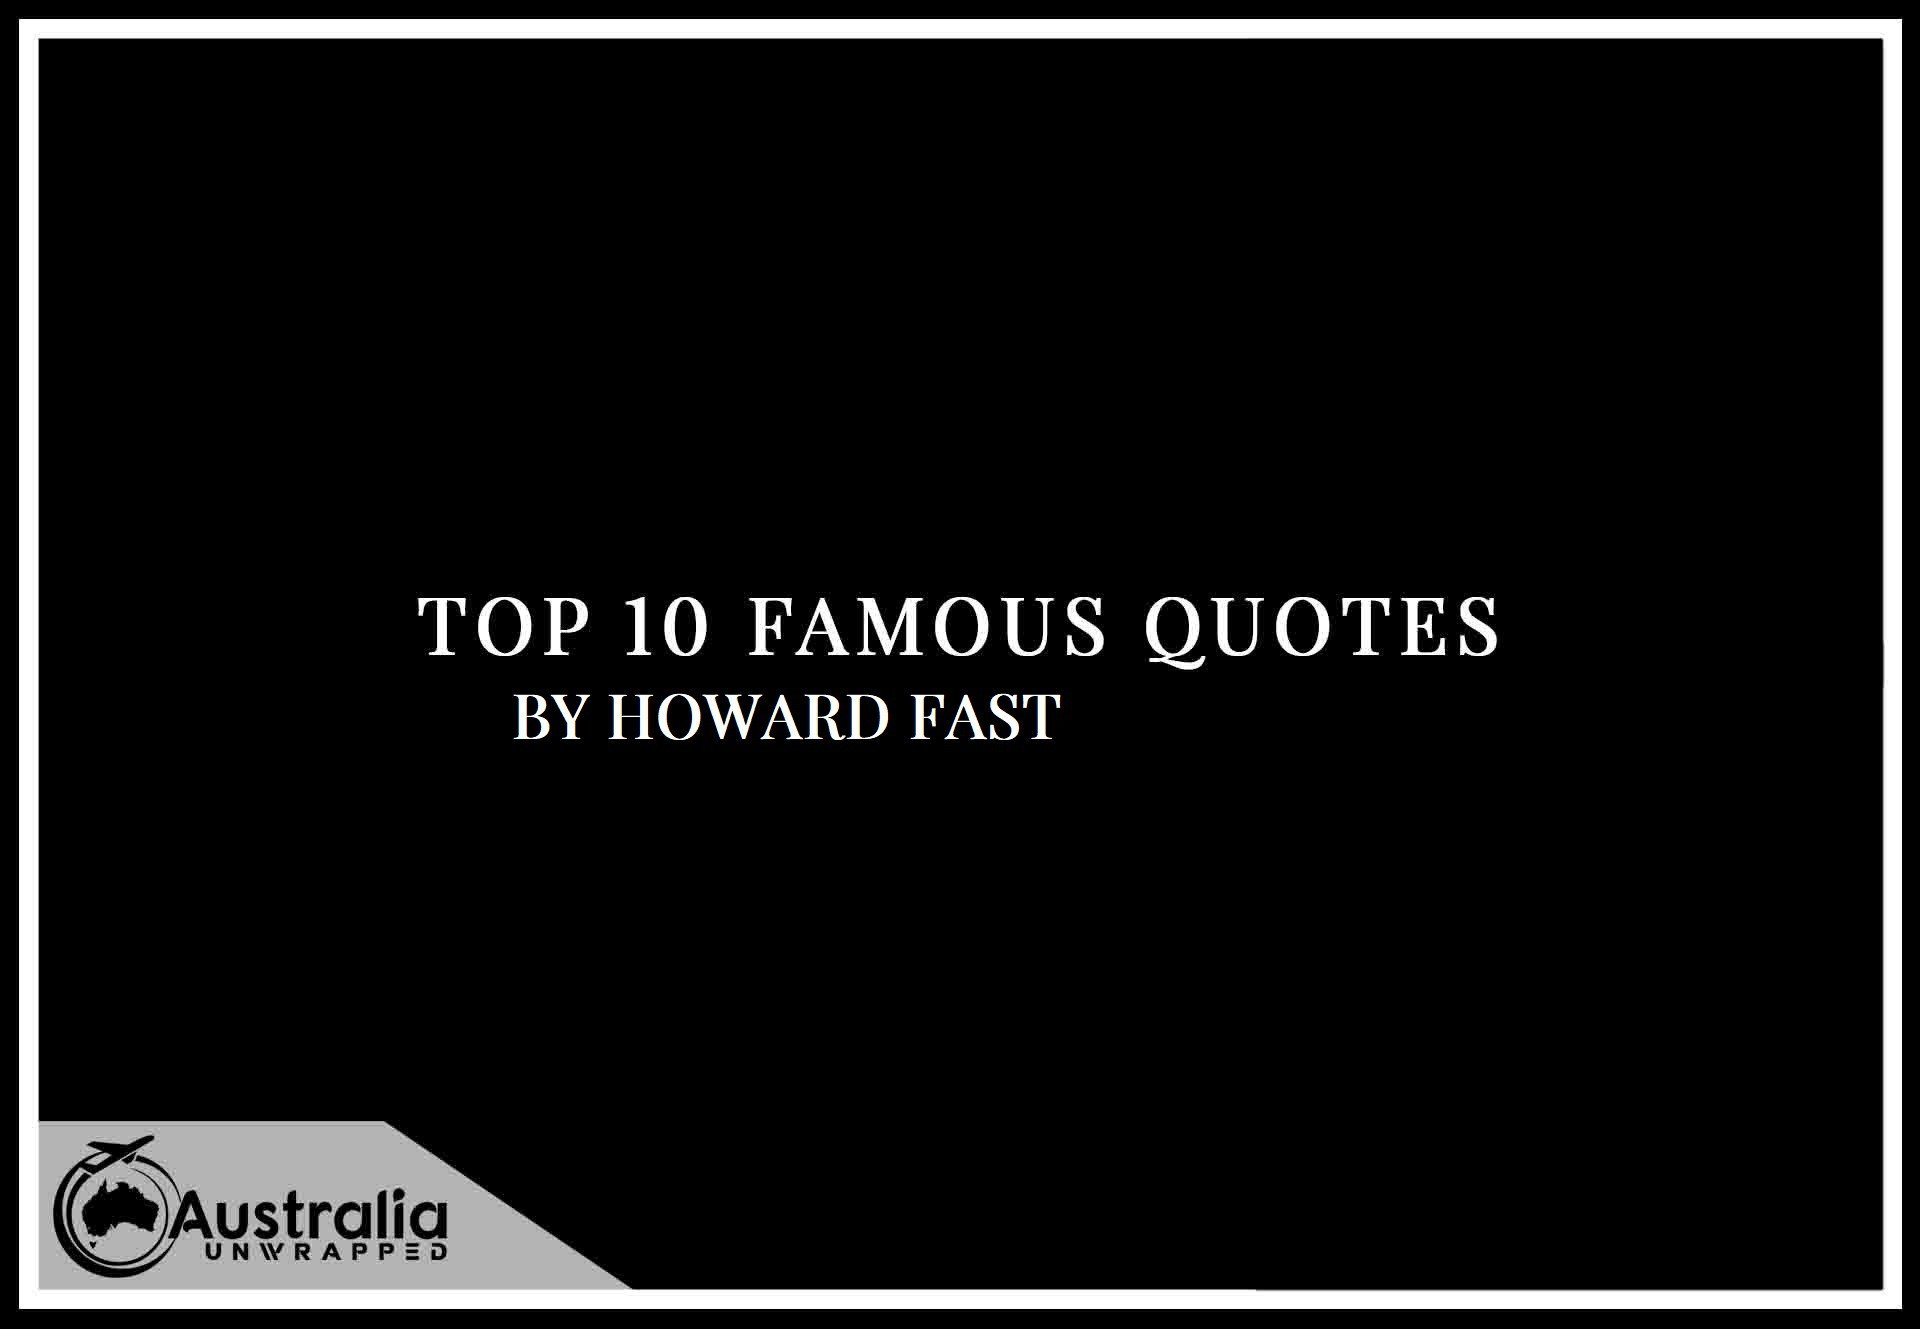 Top 10 Famous Quotes by Author Howard Fast